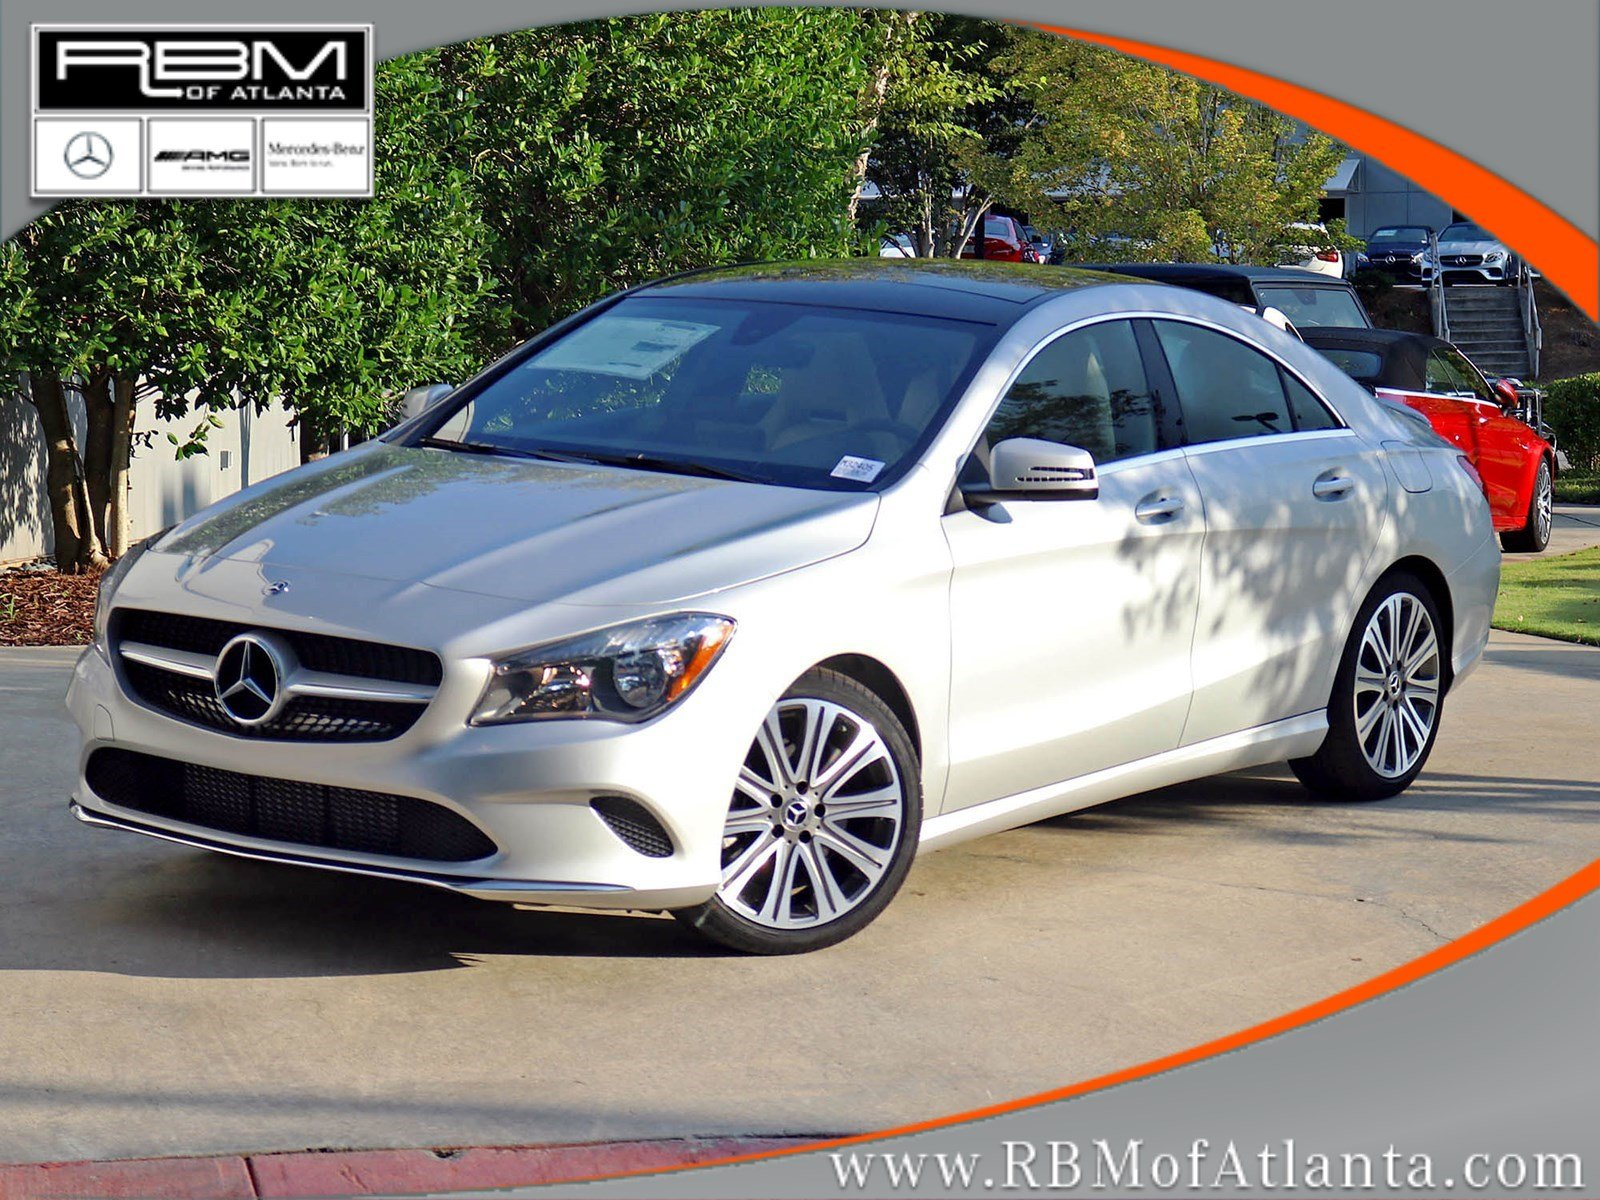 493 new cars trucks suvs in stock atlanta rbm of atlanta for Mercedes benz roswell road